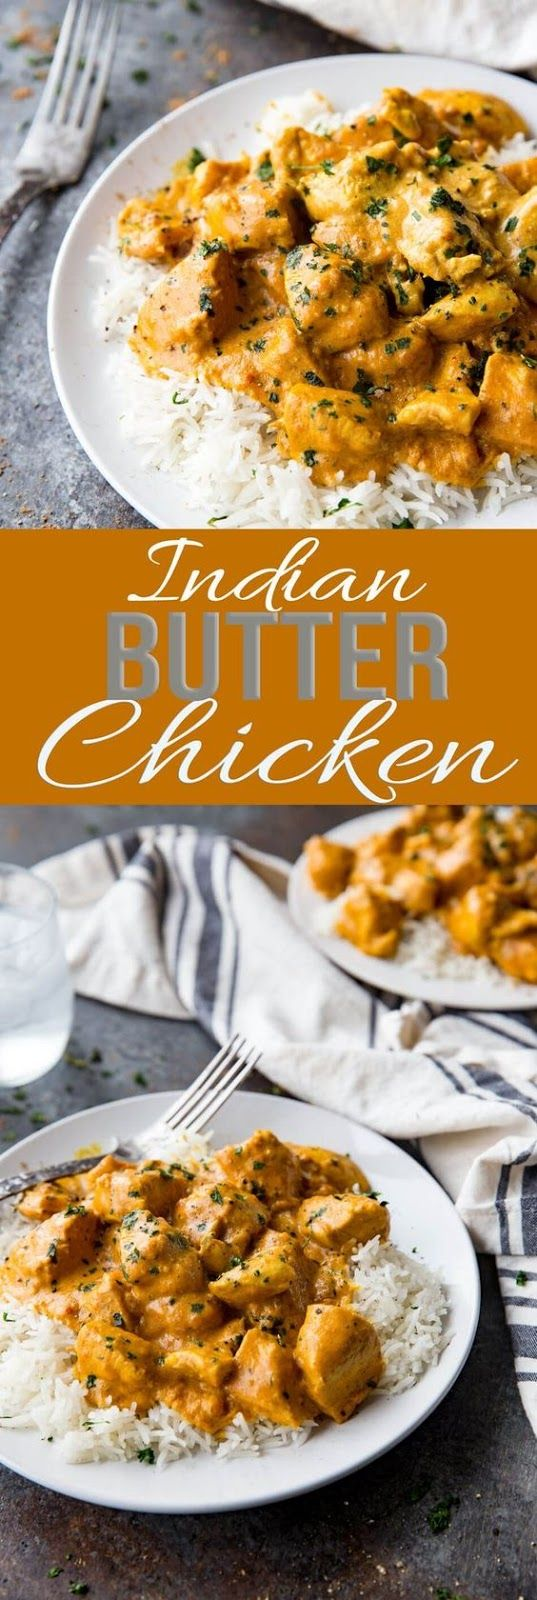 INDIAN BUTTER CHICKEN RECIPE   Food And Cake Recipes